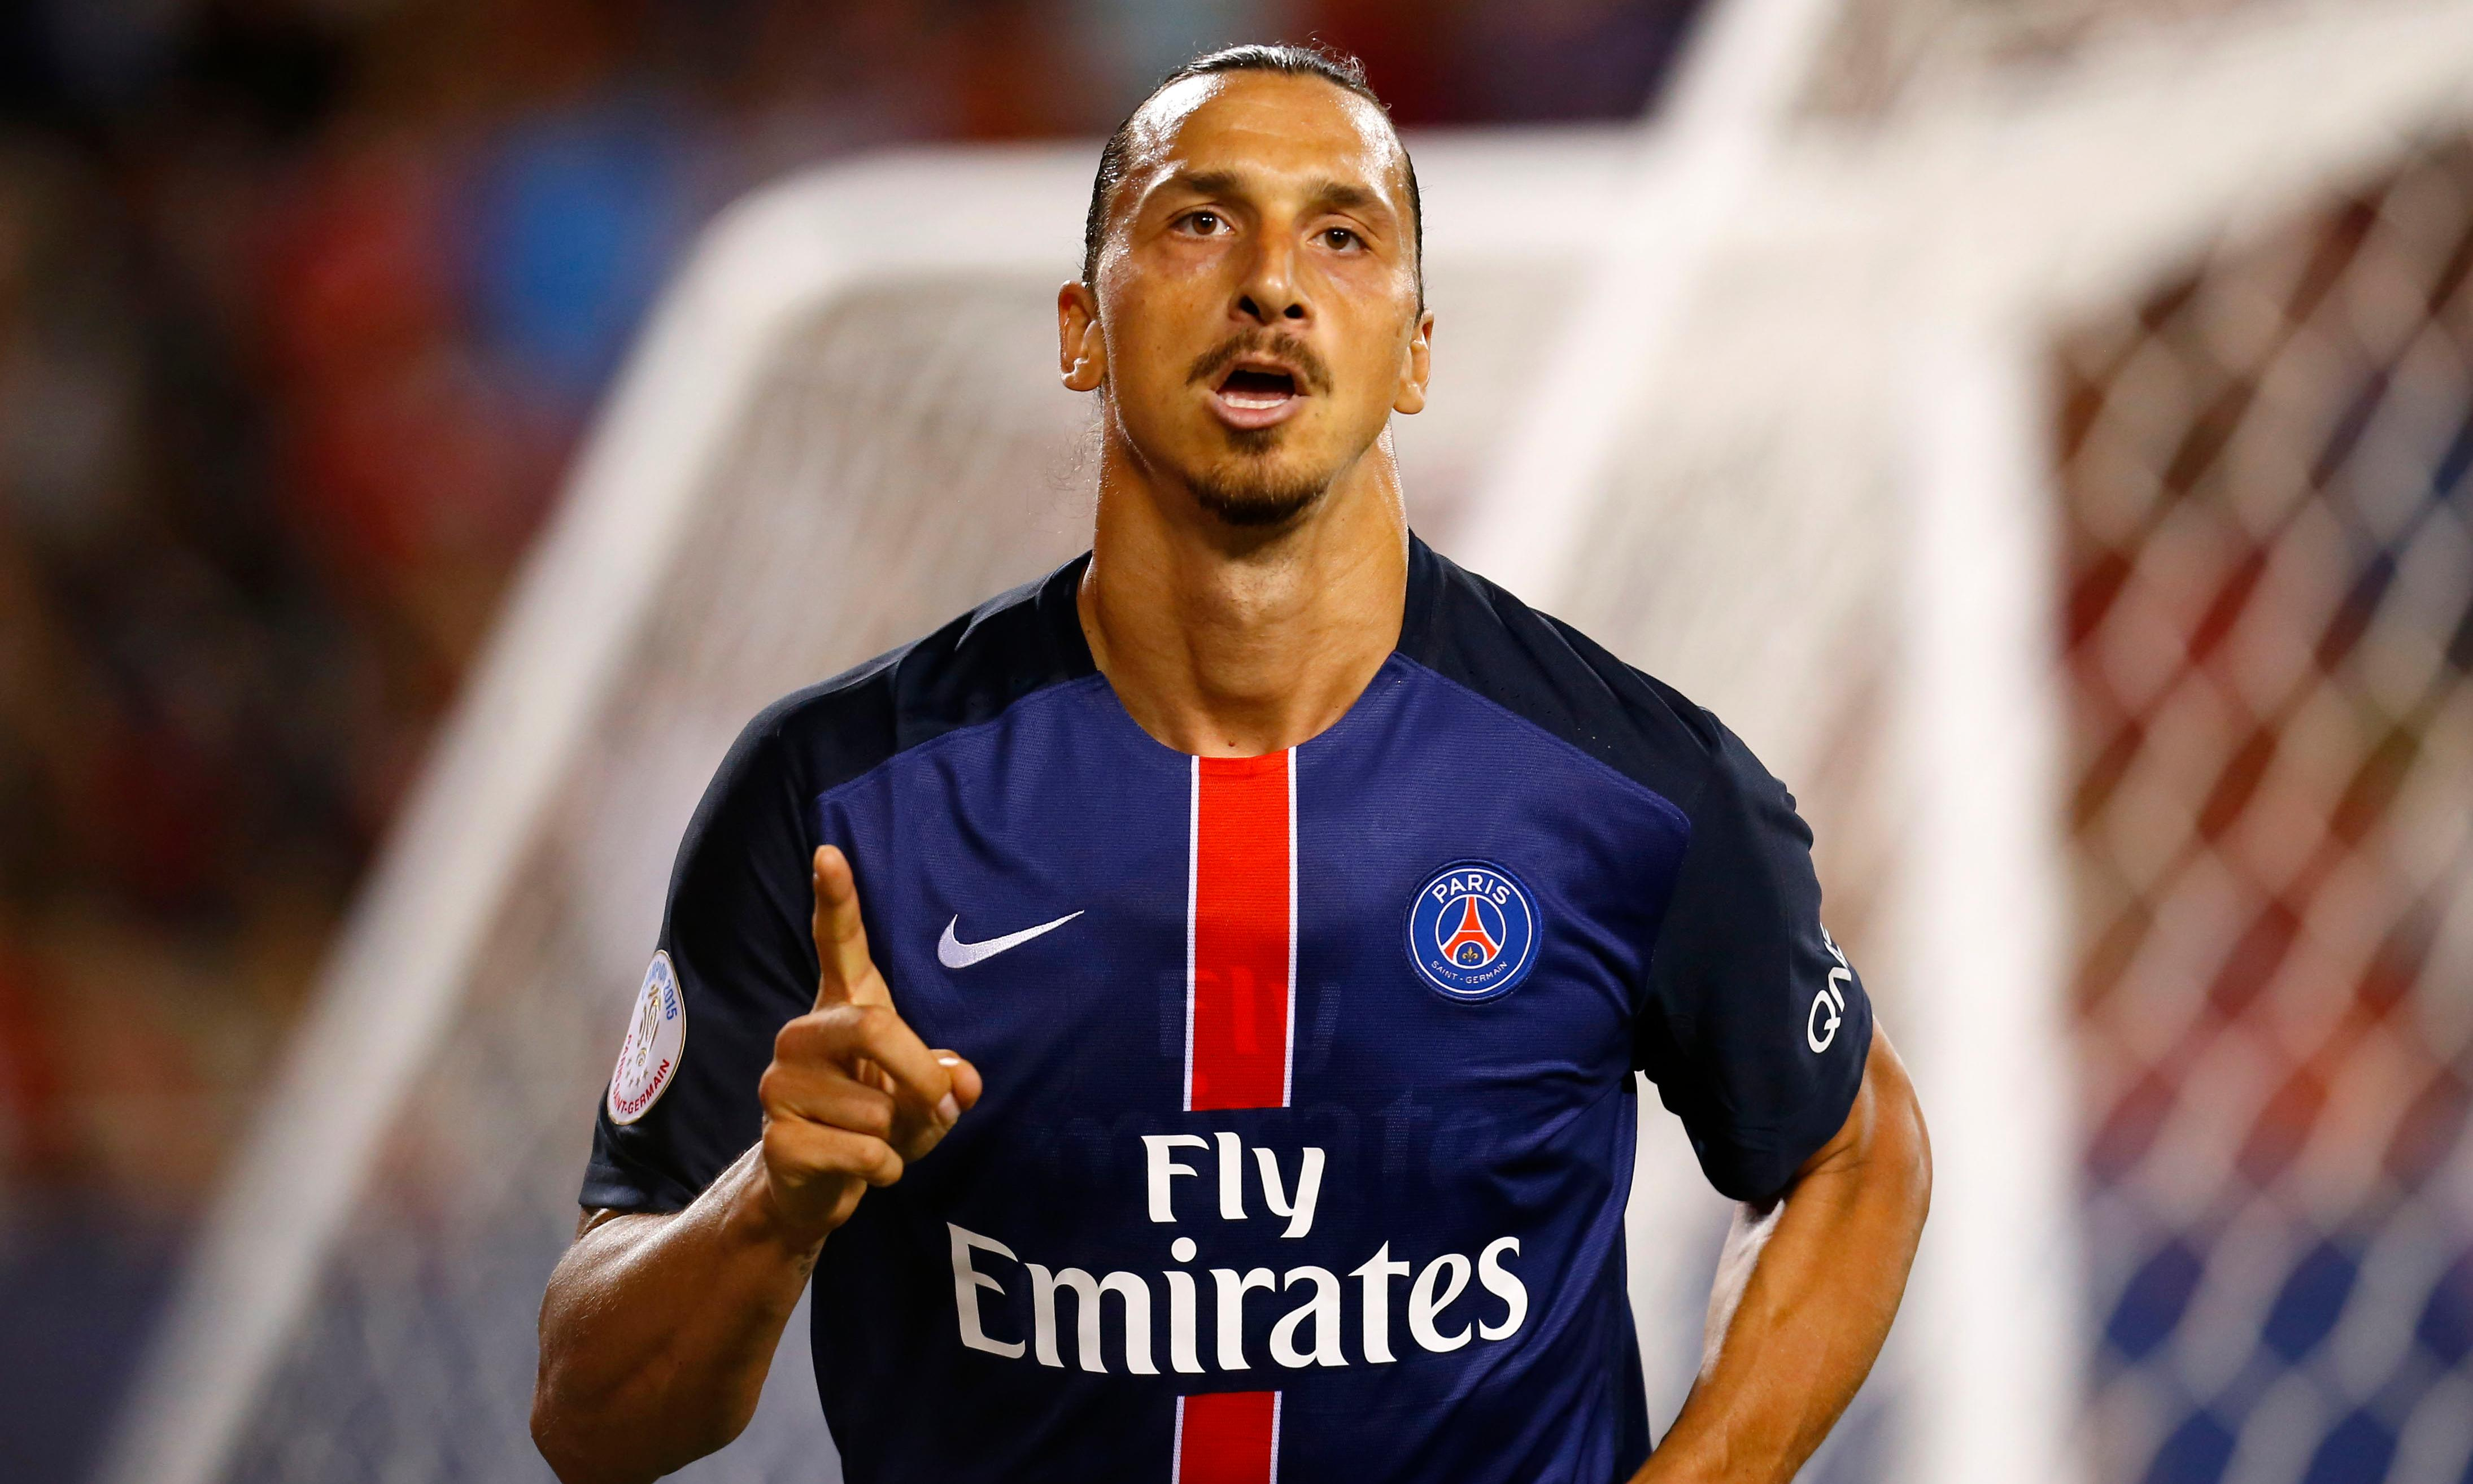 Zlatan Ibrahimovic says his next move will be a 'very big surprise'